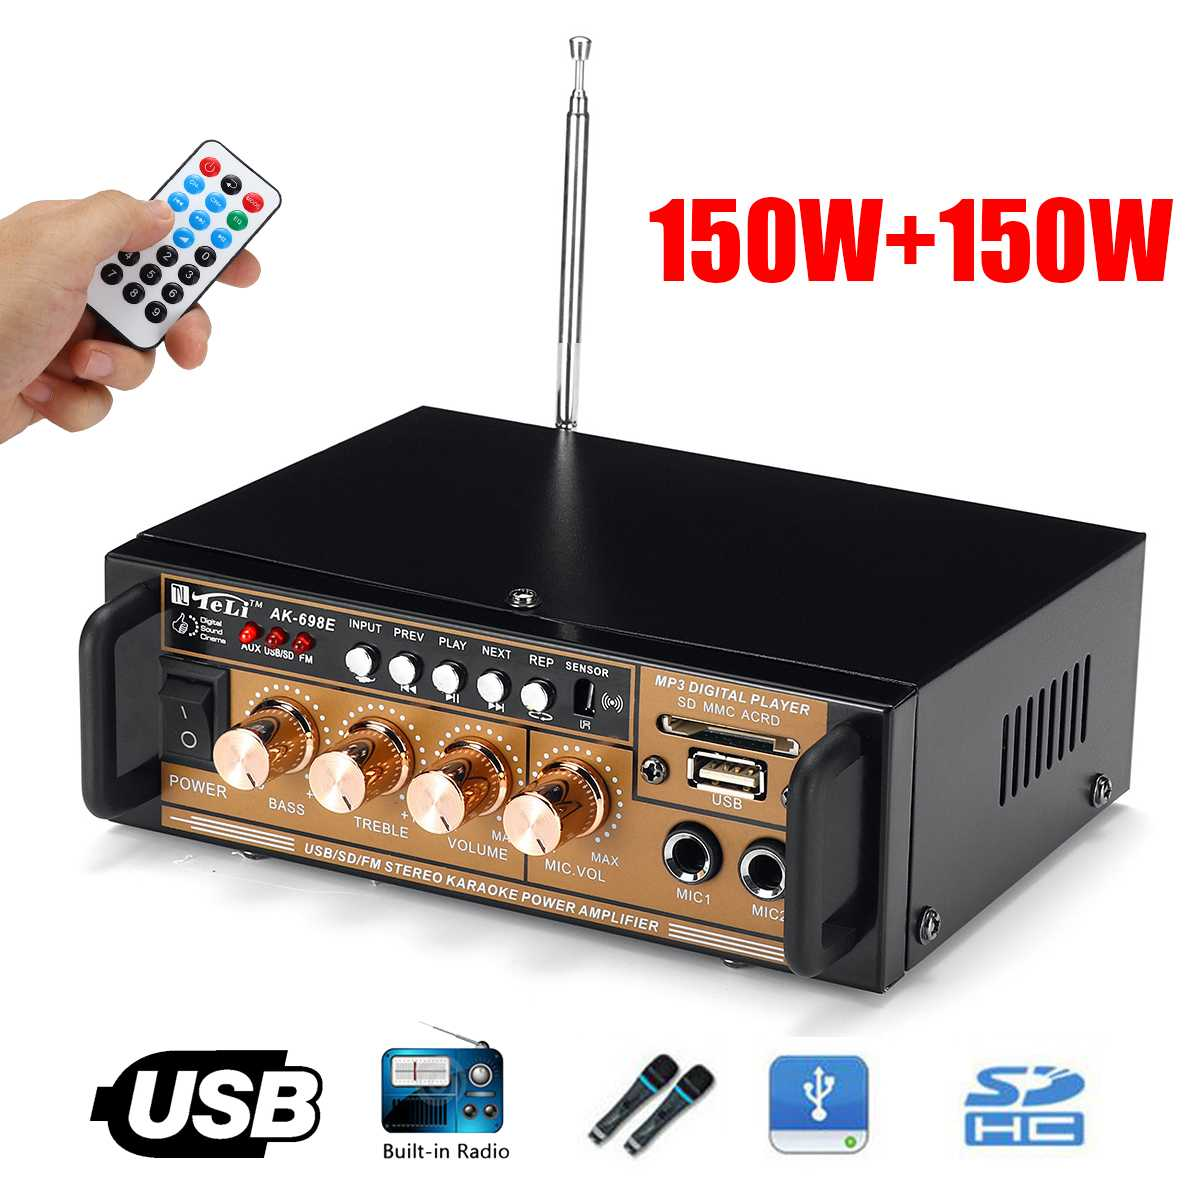 300W Mini HIFI Digital Audio Power Amplifier FM Radio USB/TF 2CH Car Home 12V/220V Stereo Power Amplificador w/Remote Control